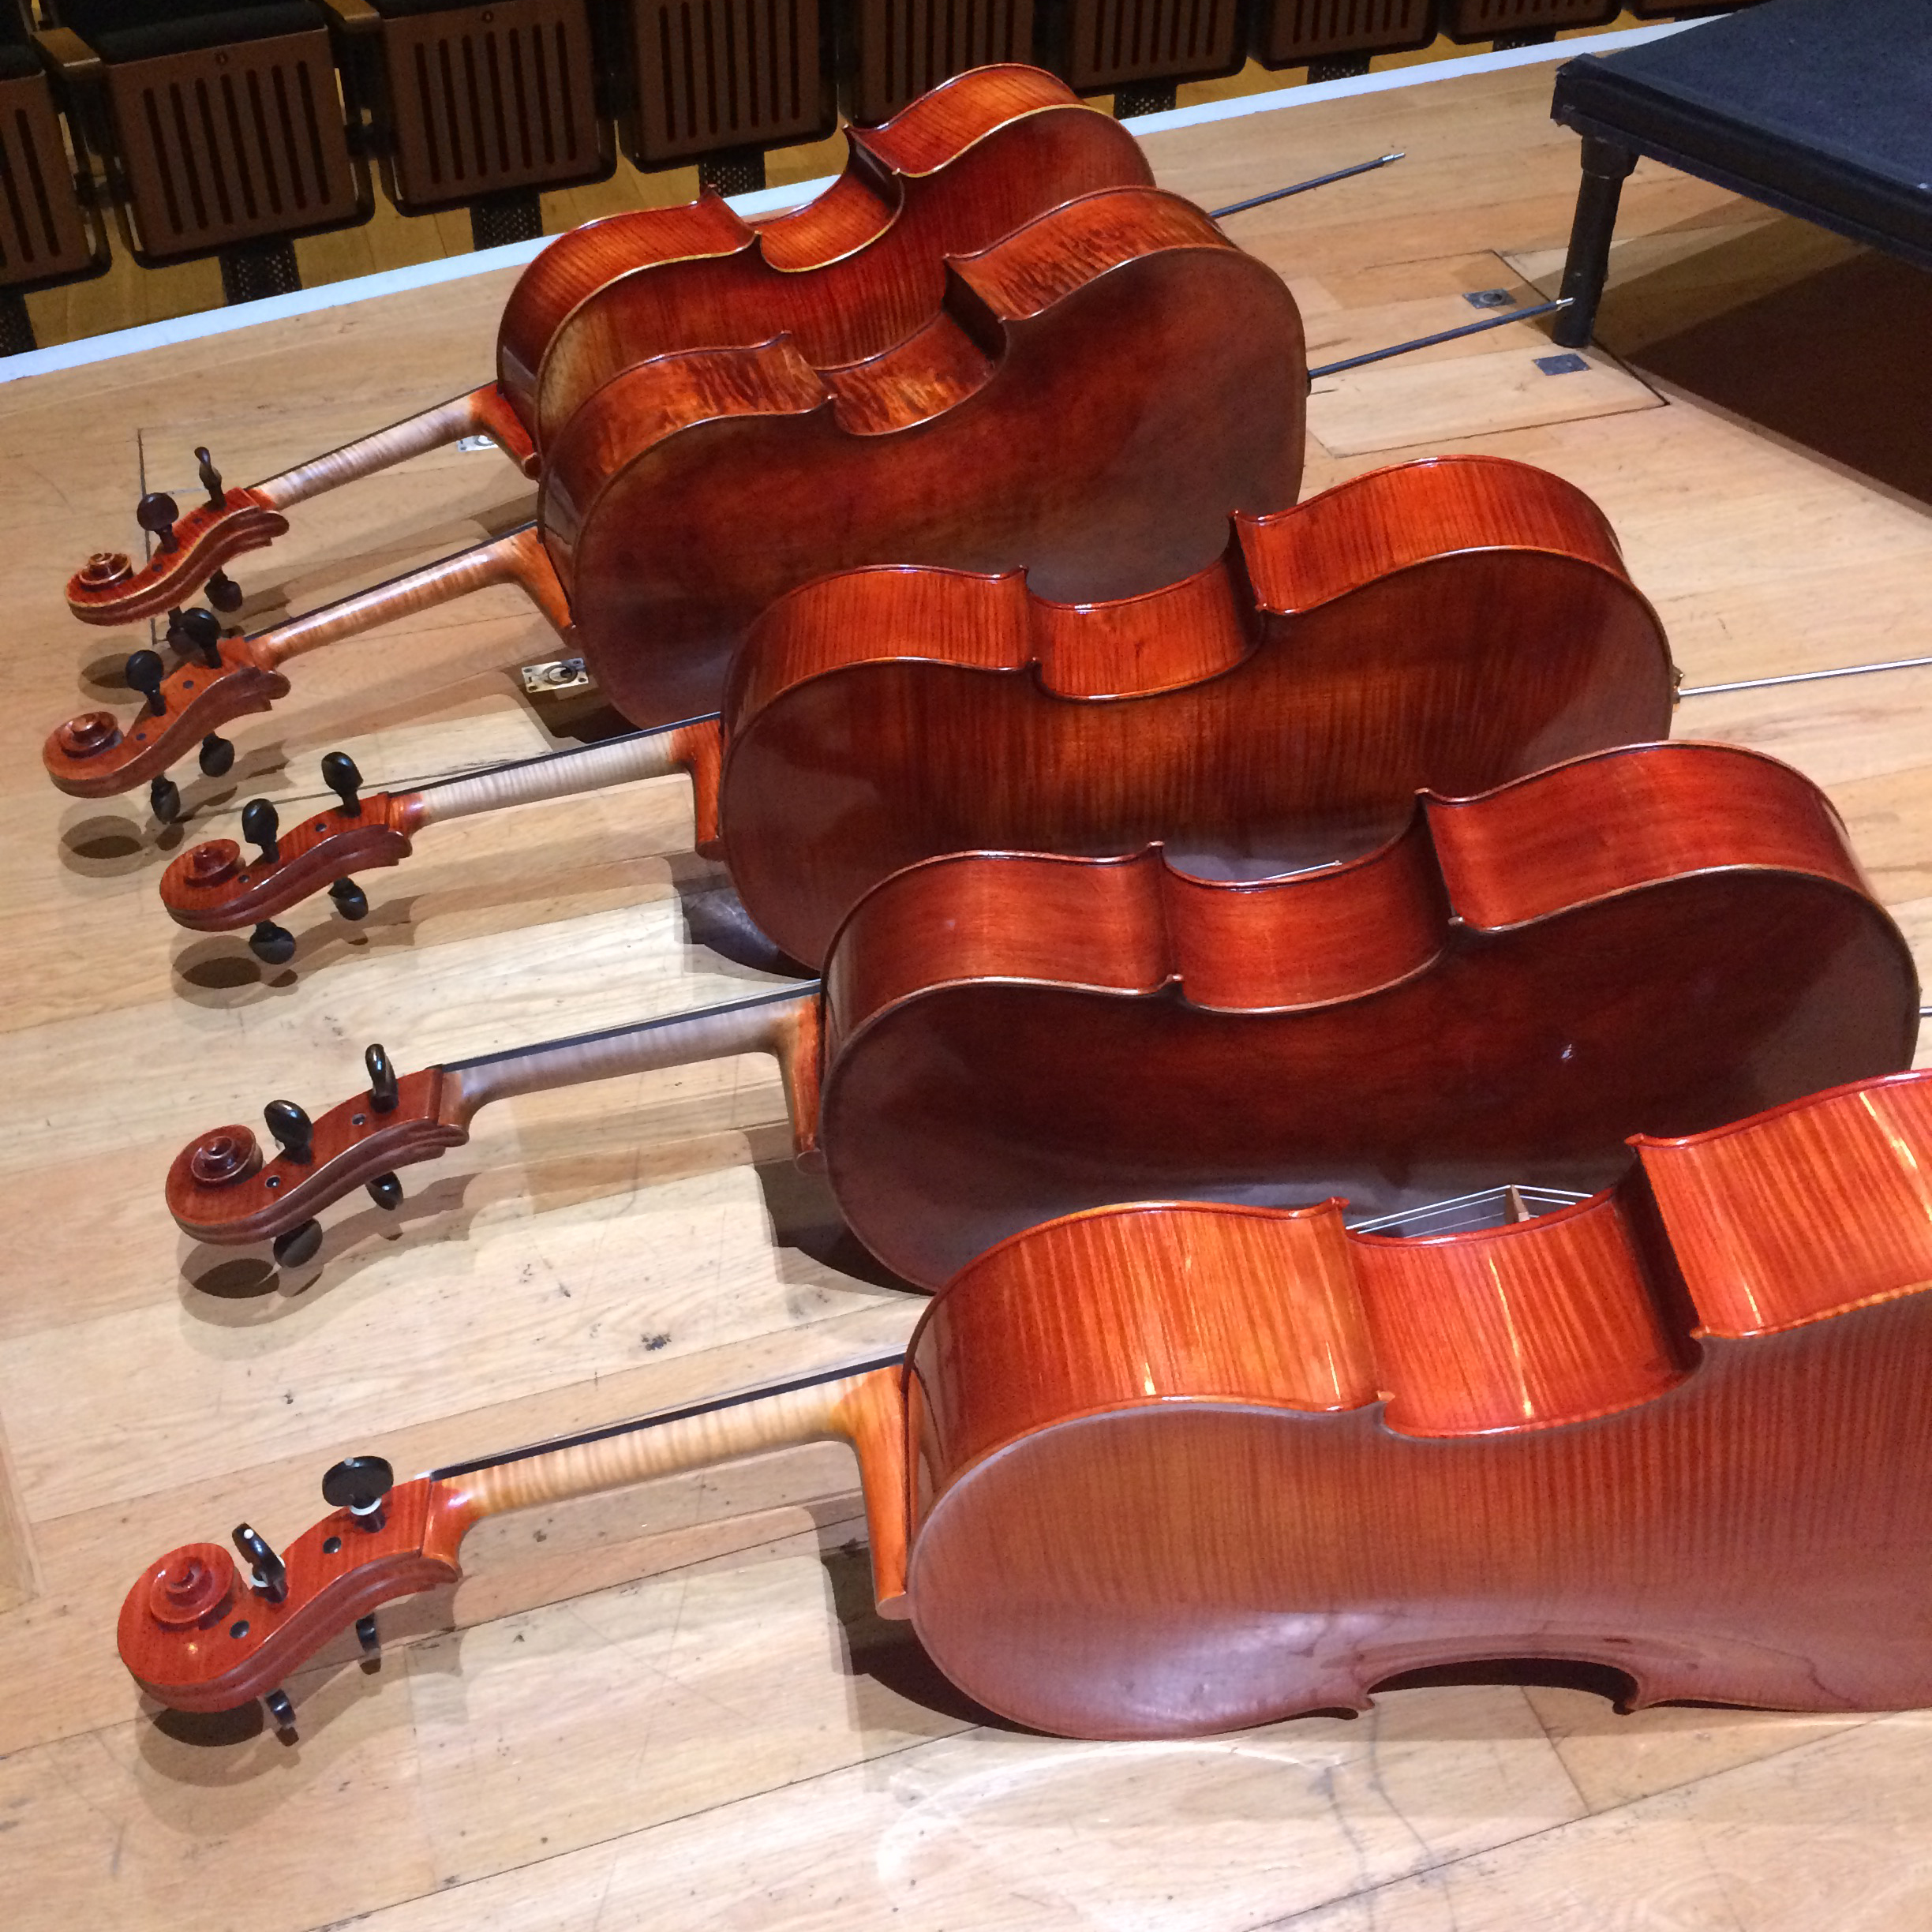 The cellos just asking for me to trip over them